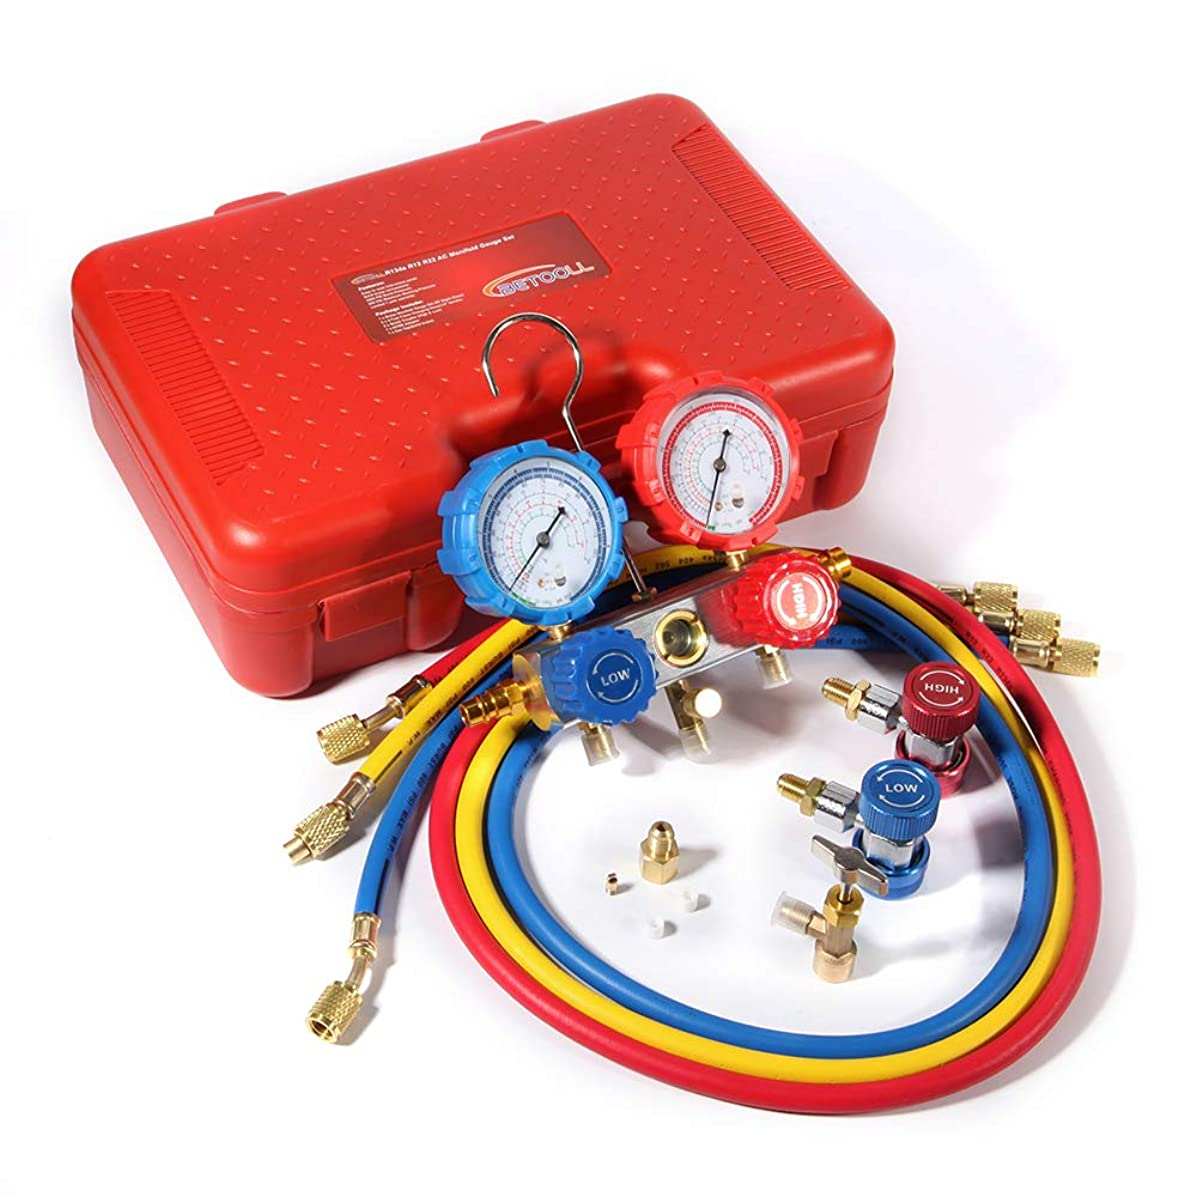 BETOOLL Diagnostic Manifold Gauge Set for Charging&Vacuum Pump Evacuation fits R134a R12 R22 Refrigerants with 4 Feet Hoses,Adjustable Couplers,Acme Tank Adapters and Can Tap